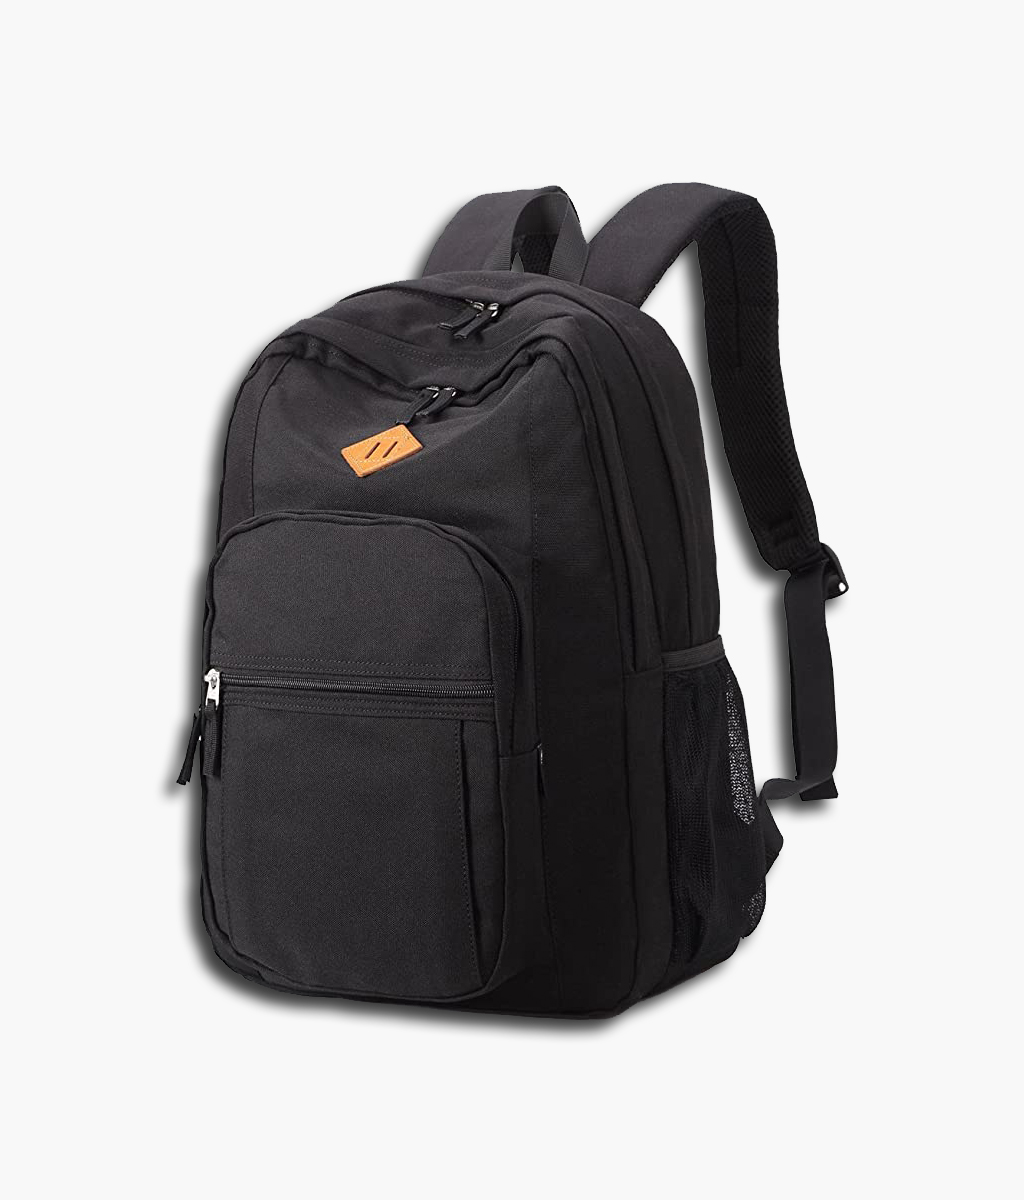 China Wholesale Equipment Bags Exporters –  Black Unisex Cool Travel Laptop Waterproof School Backpack – Kinghow